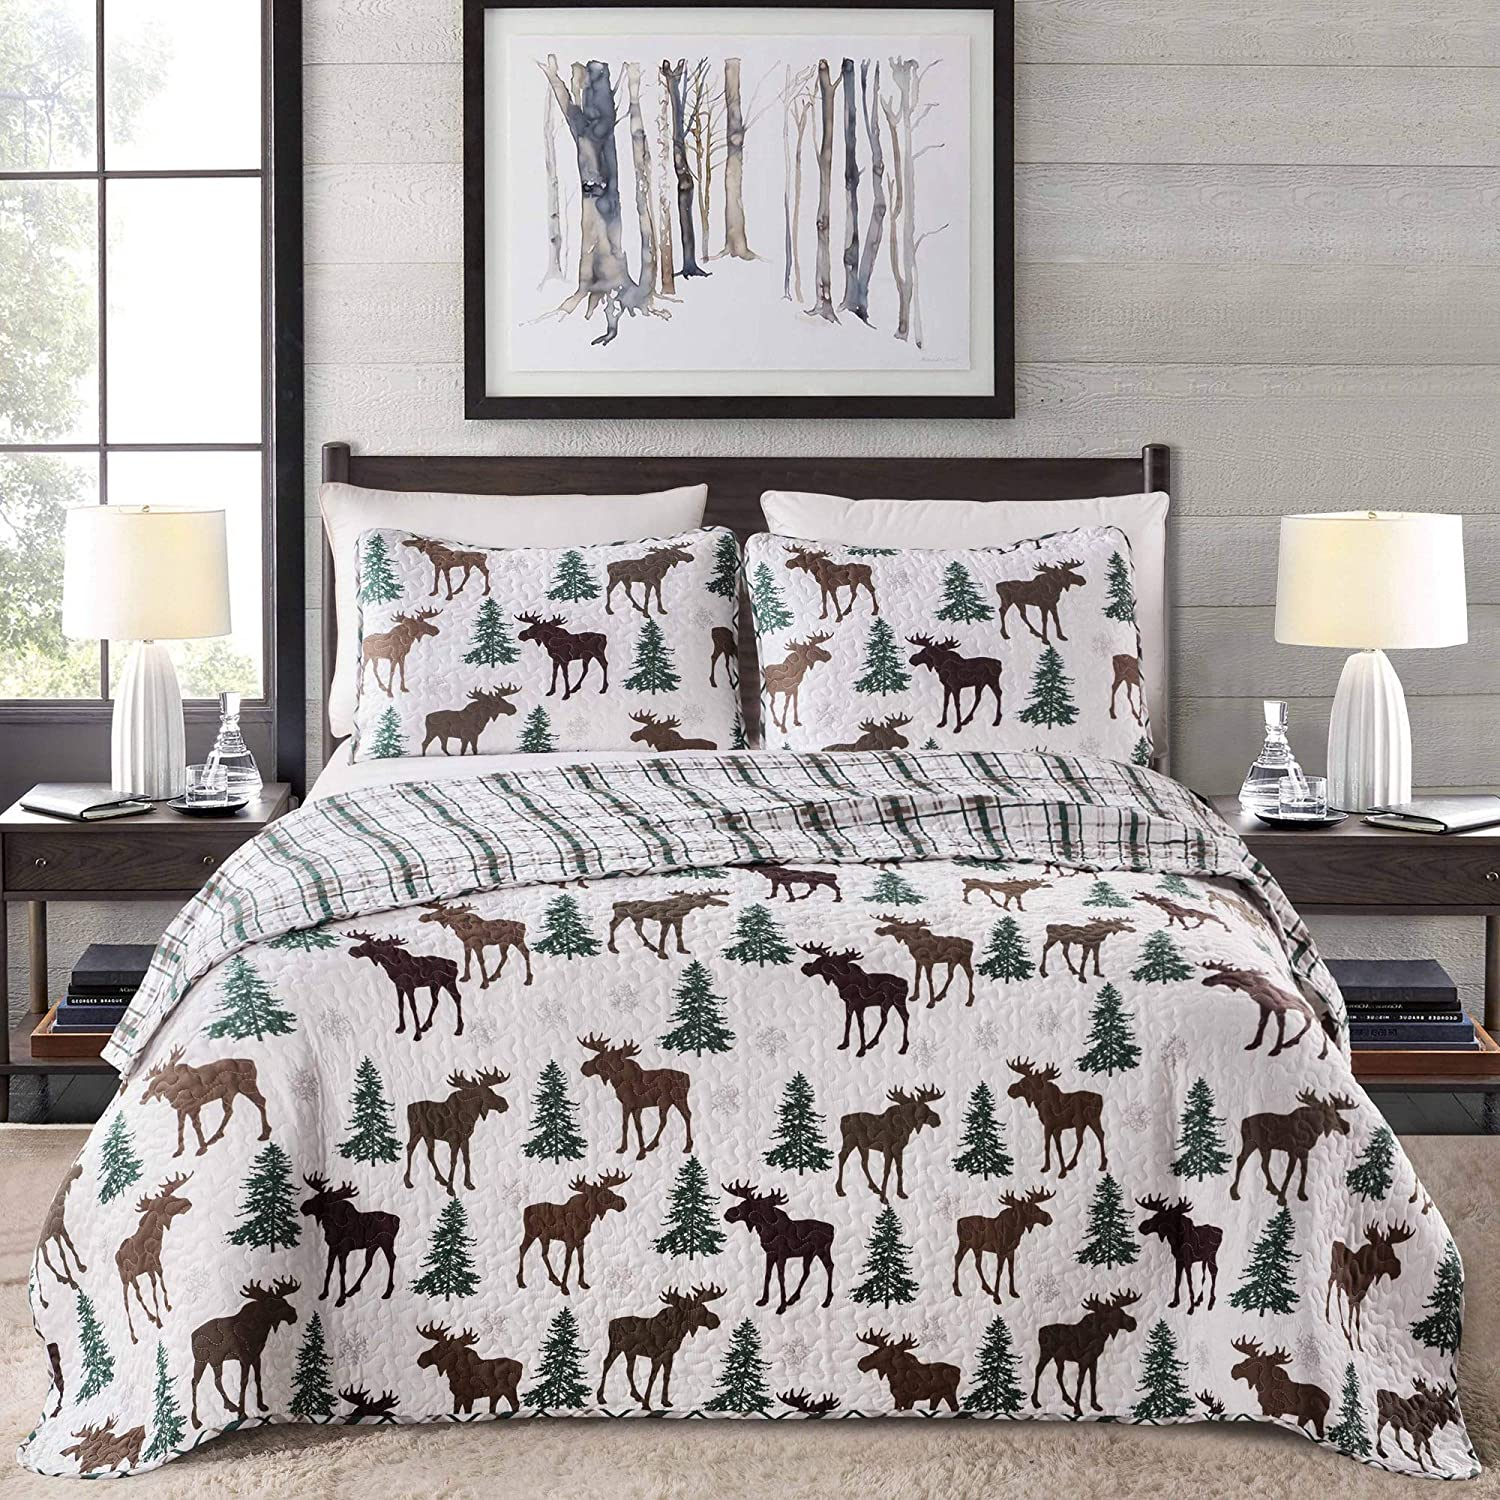 Great Bay Home Lodge Bedspread Full/Queen Size Quilt with 2 Shams. Cabin 3-Piece Reversible All Season Quilt Set. Rustic Quilt Coverlet Bed Set. Wilderness Collection (Moose - Chocolate)